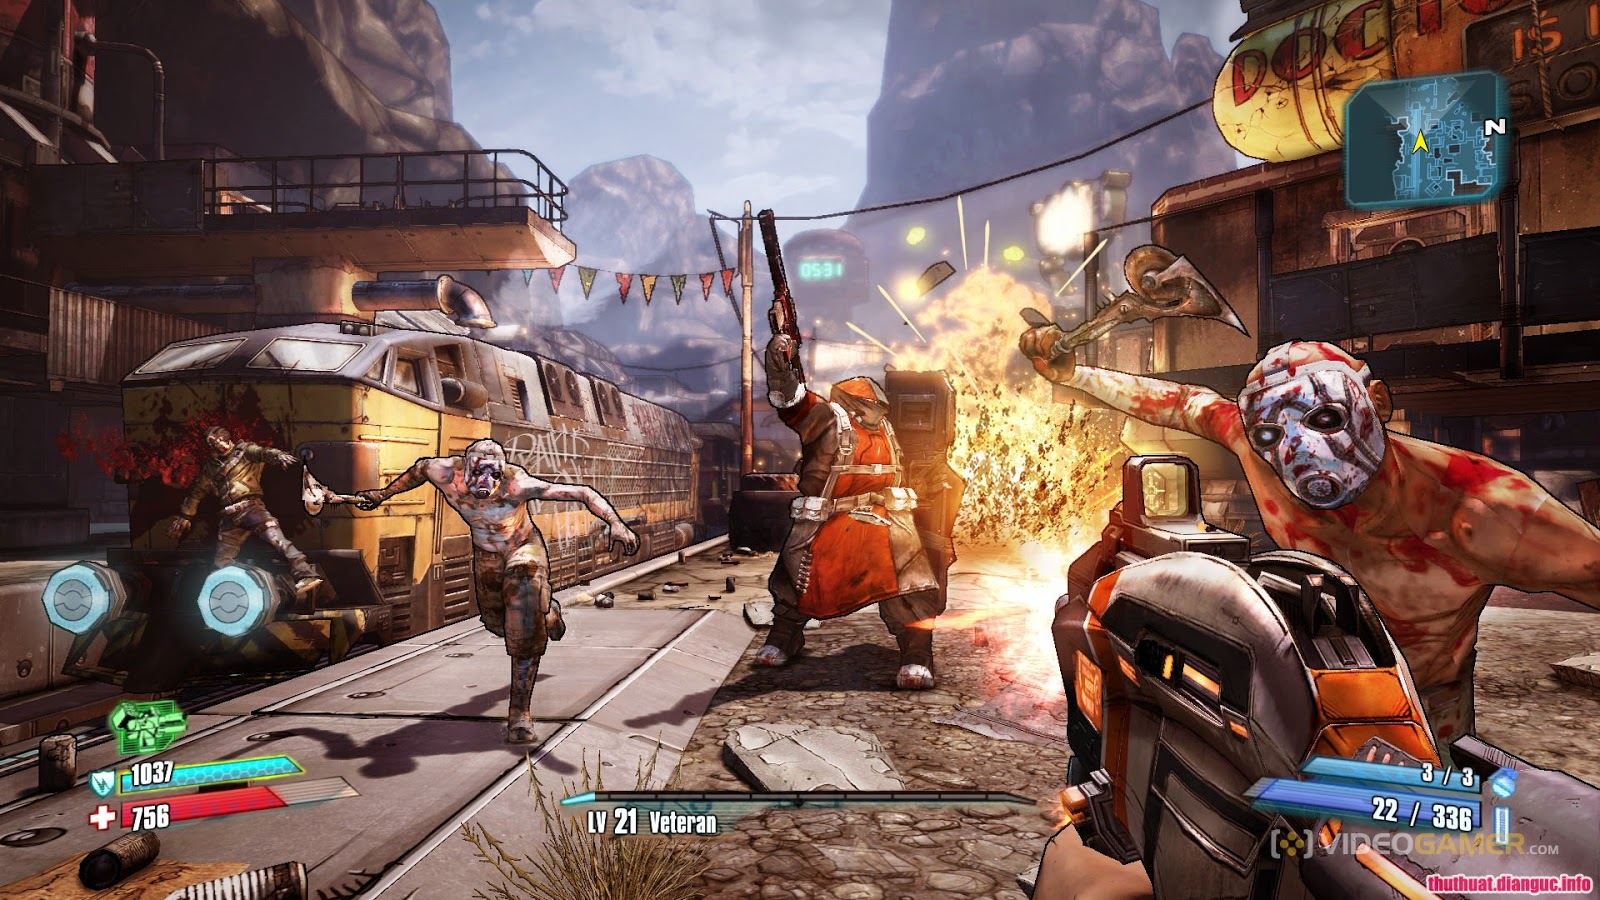 Tải game Borderlands 2 Game of the Year Edition miễn phí